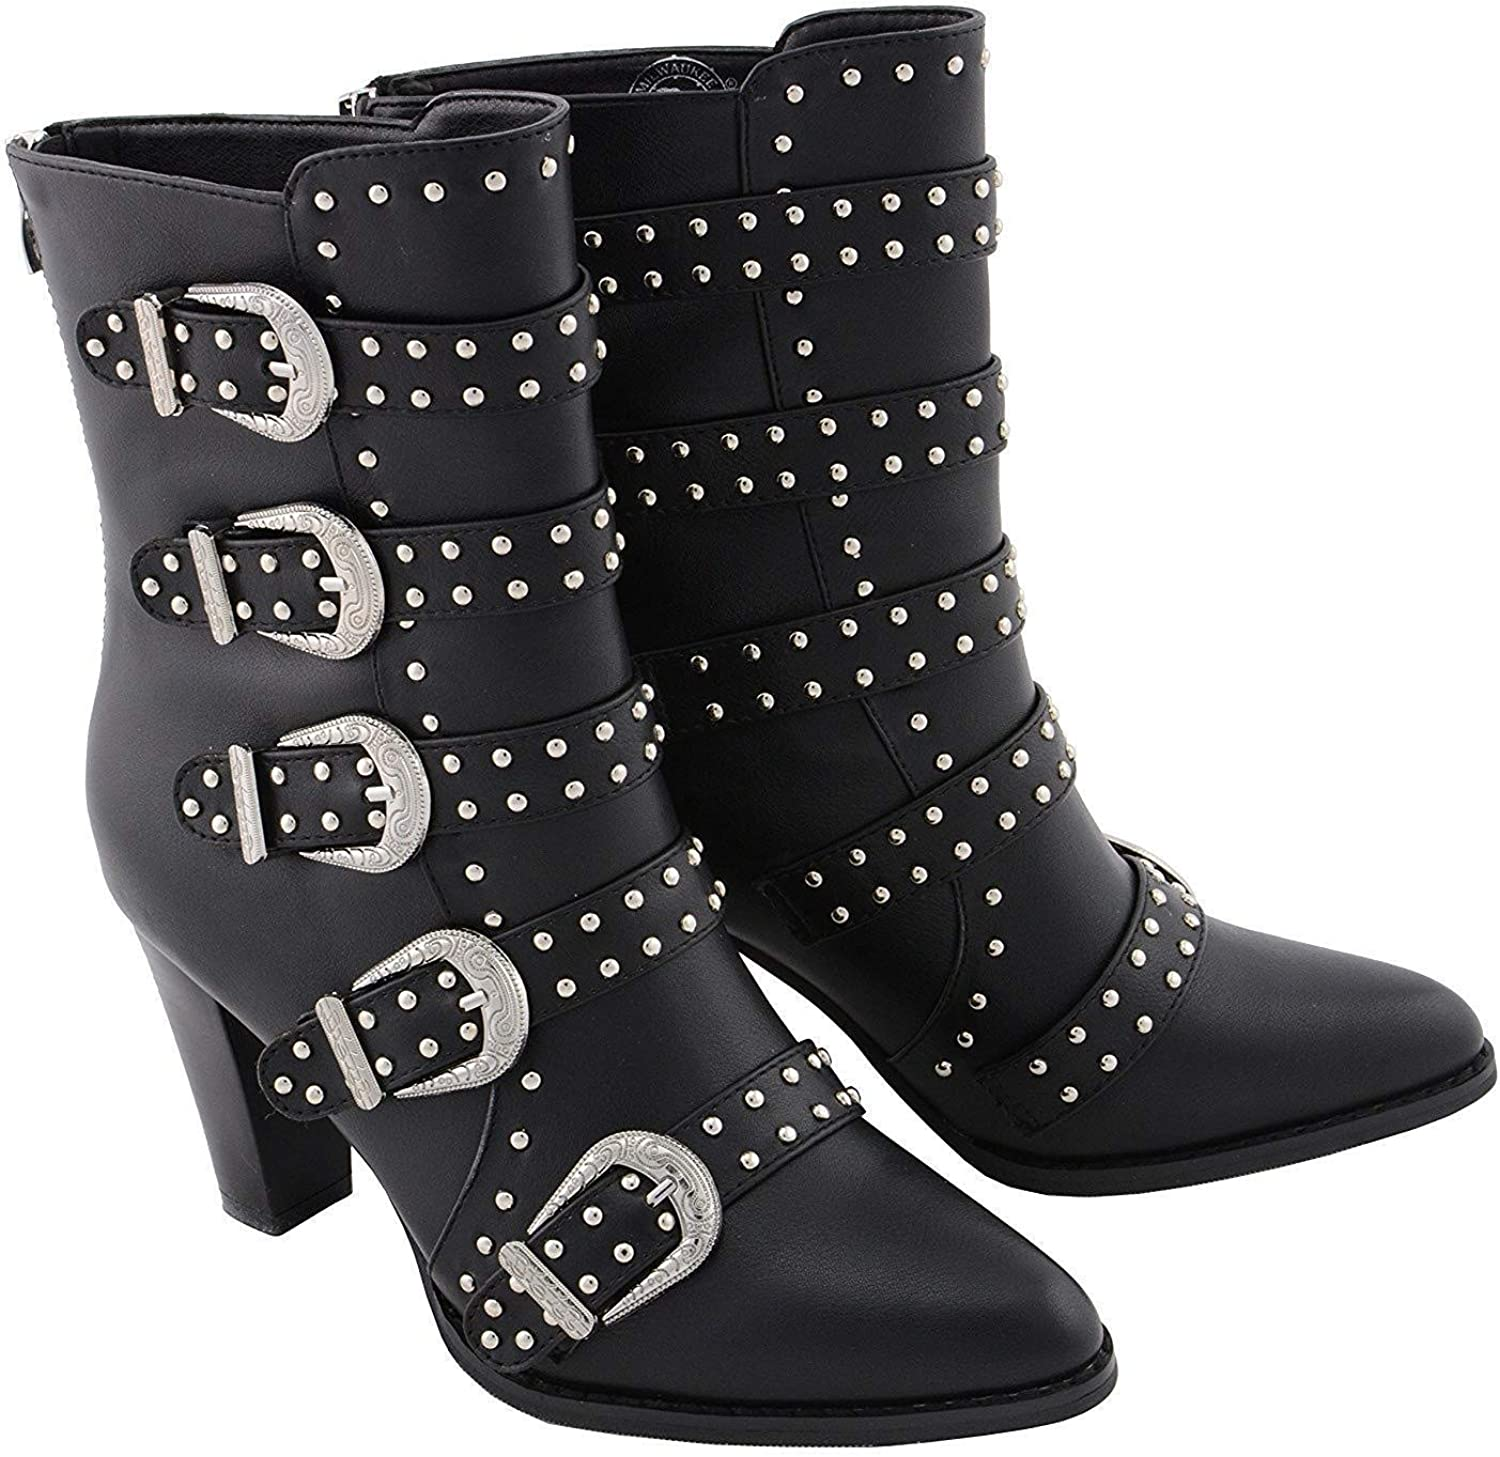 Milwaukee Leather MBL9428 Women's Black Buckle Up Boots with Studded Bling